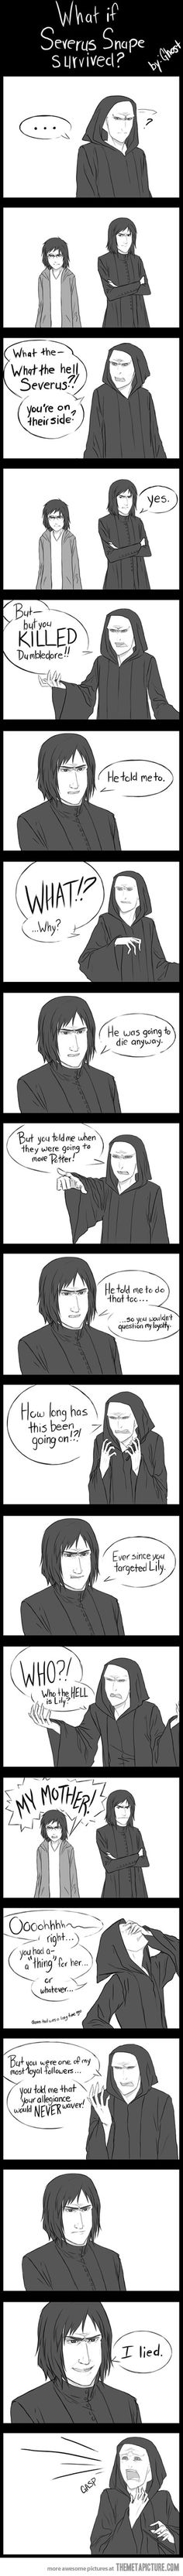 I love Voldemort's face in the last panel. ;-)